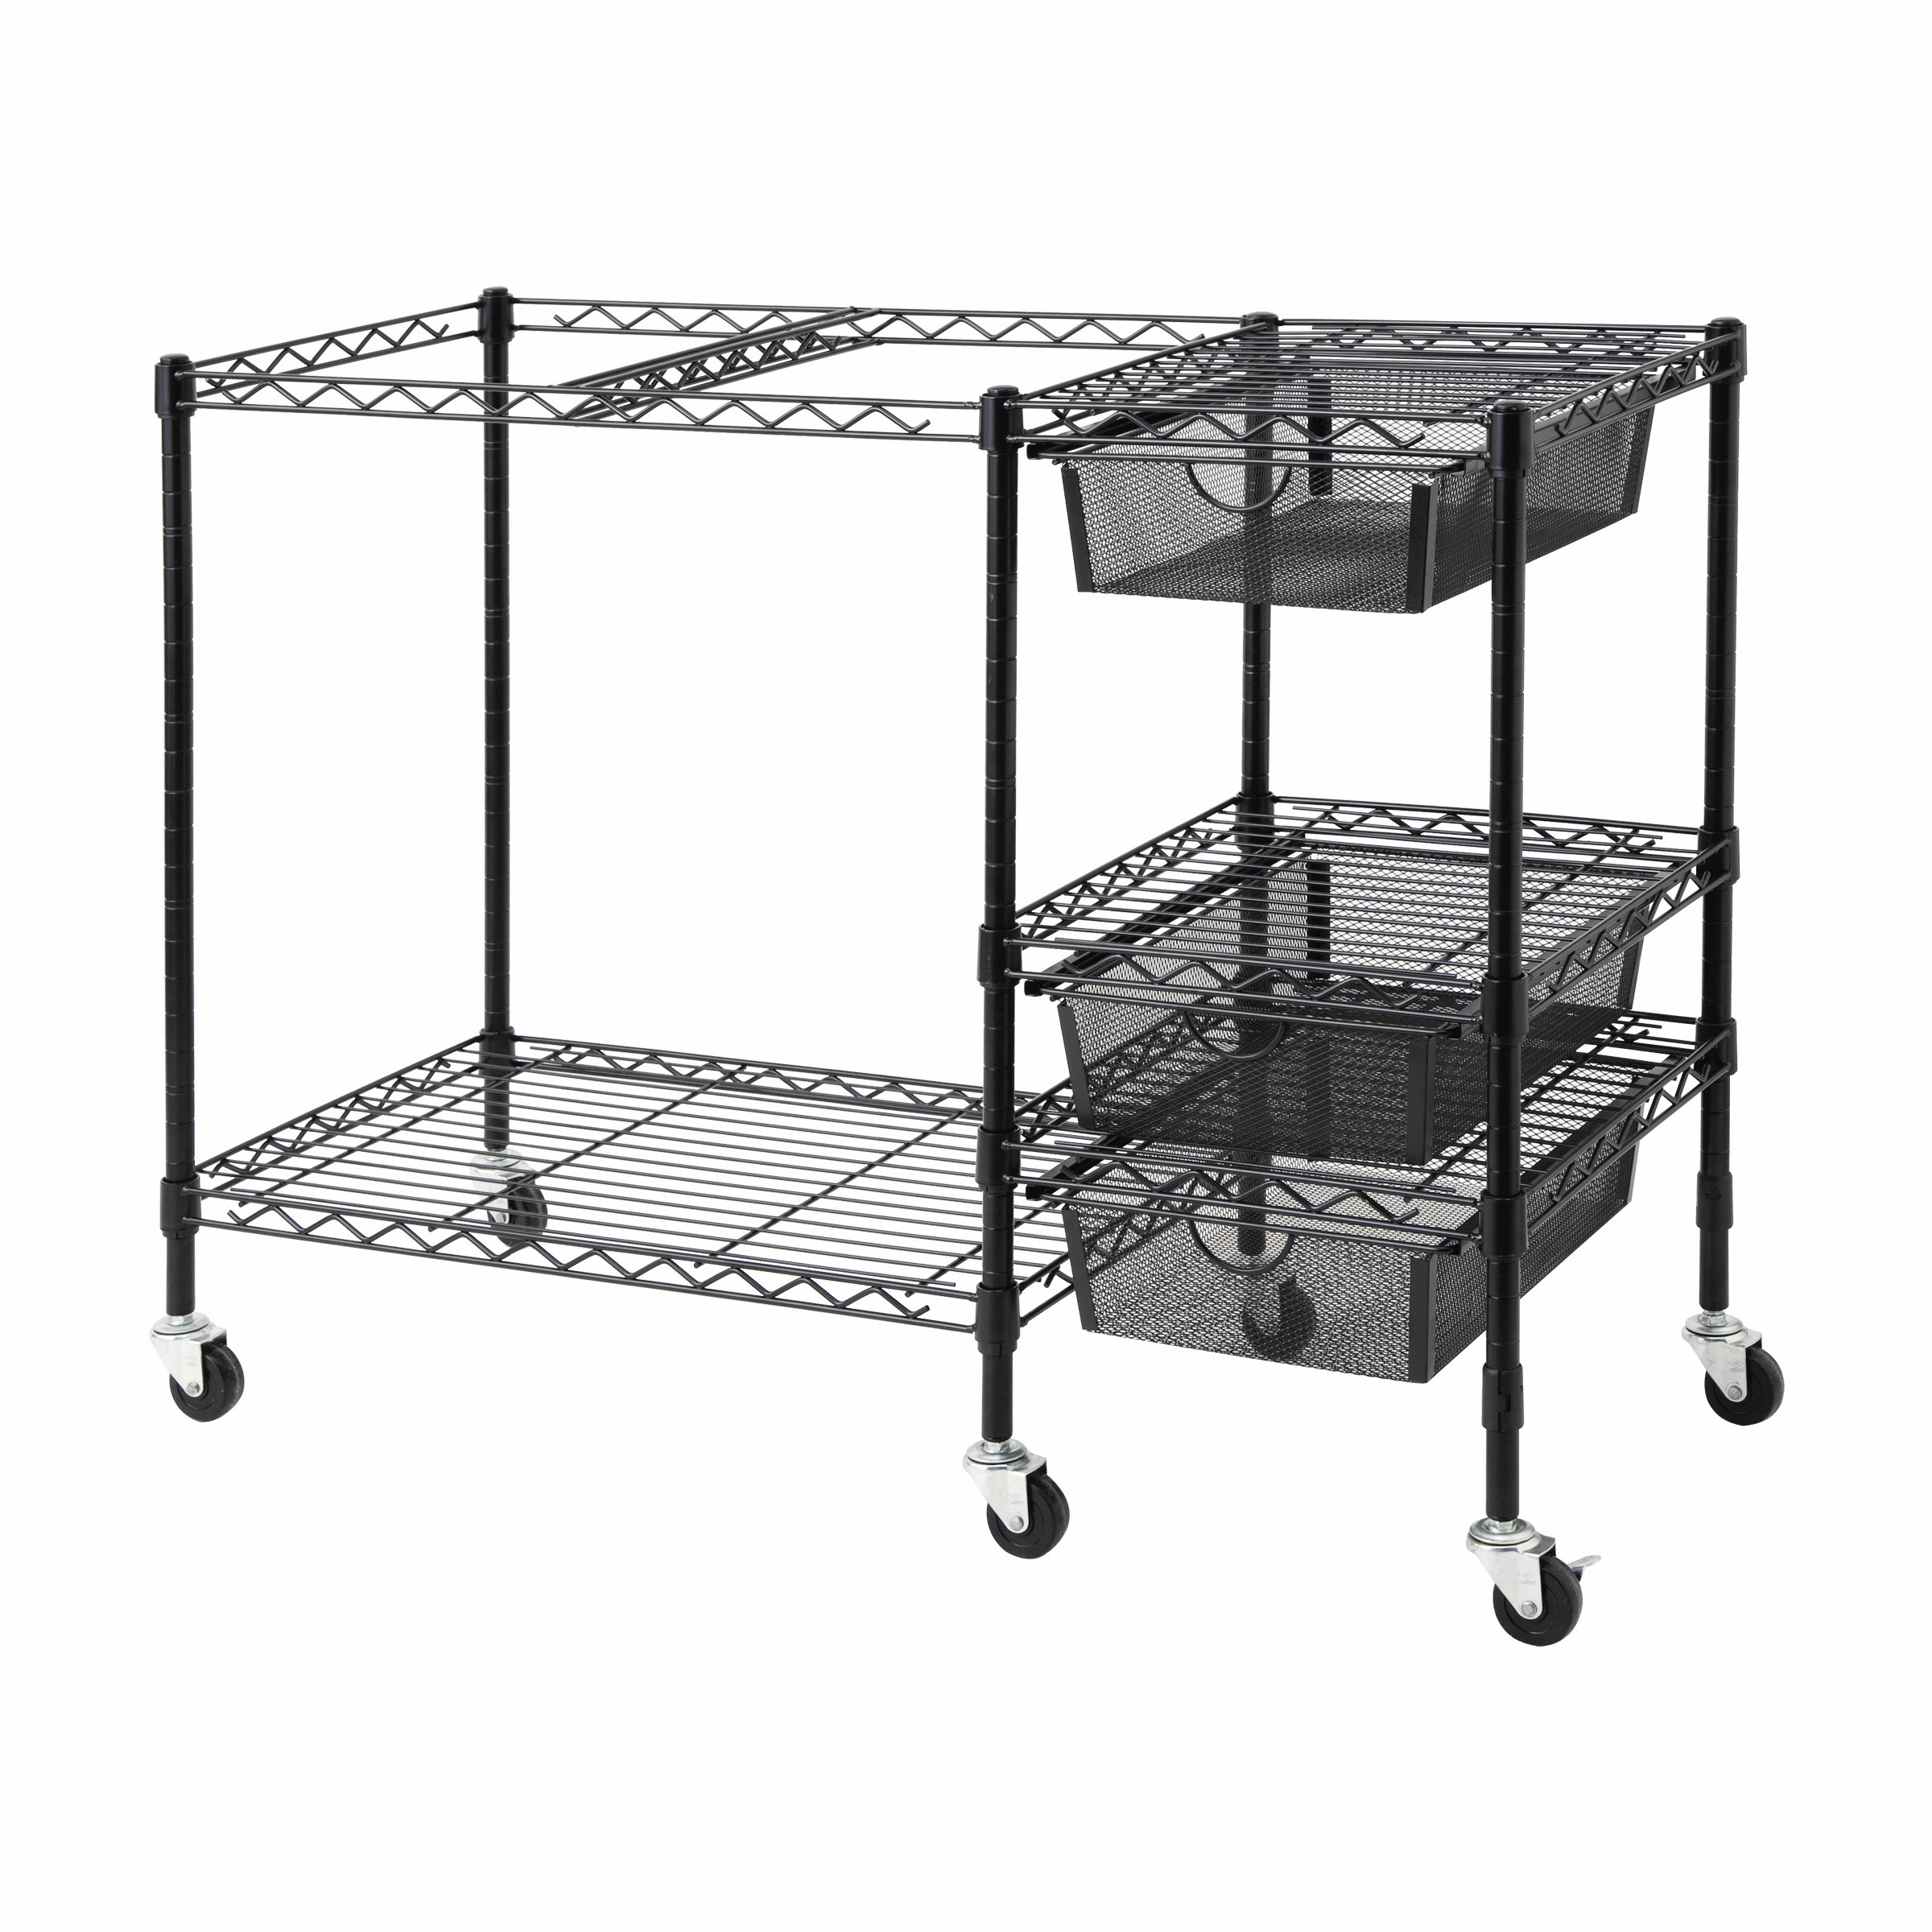 Vertiflex Mobile File Cart with 3 Drawers, 38 x 15.5 x 28 Inches, Black (VF50621) by Vertiflex